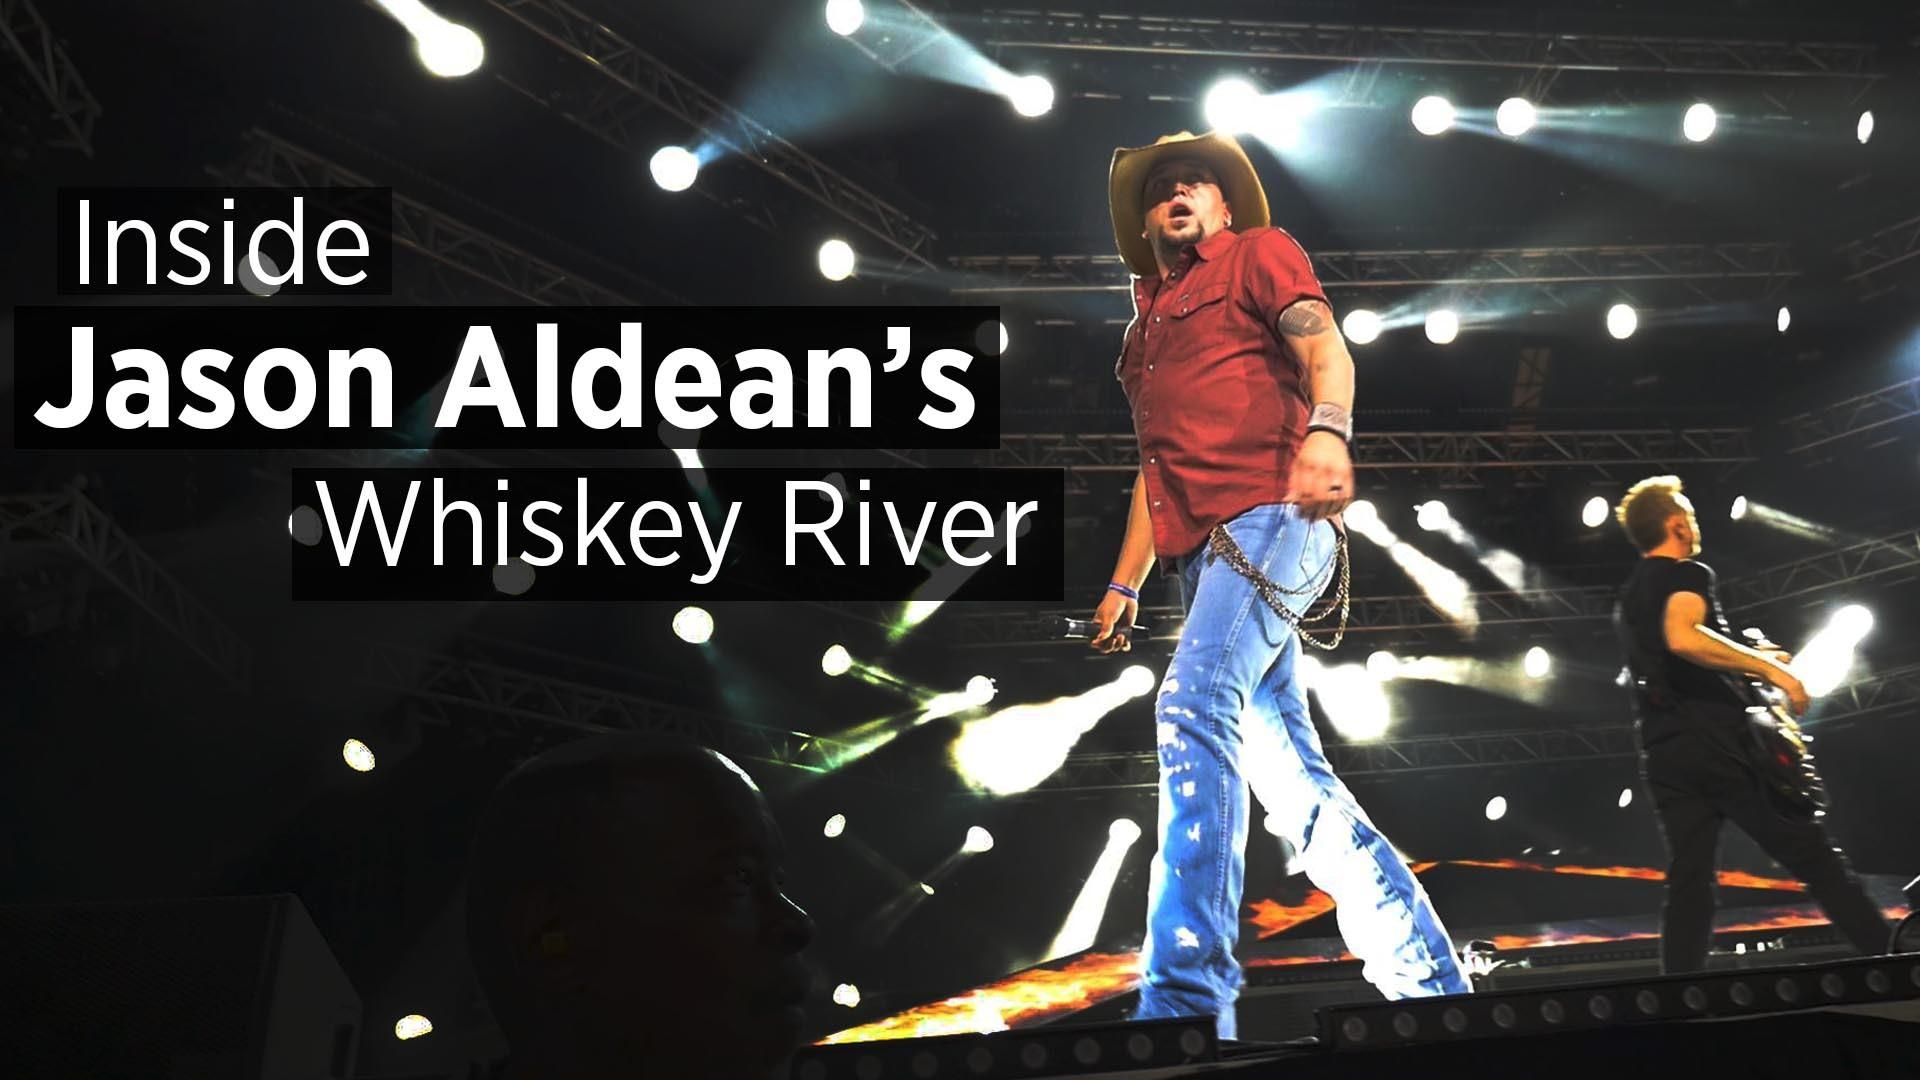 Inside Jason Aldean's Whiskey River